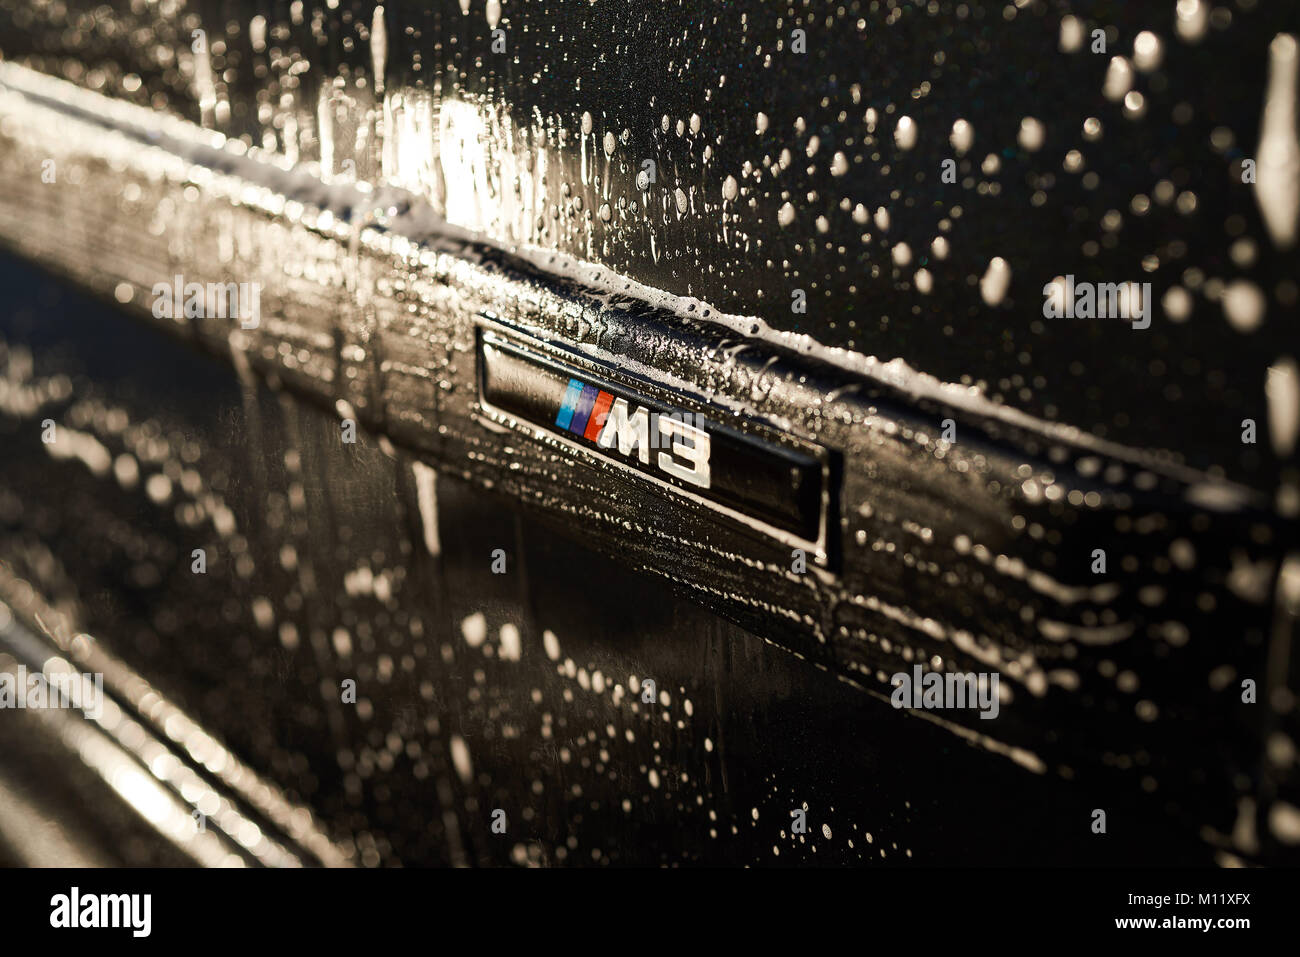 Suds on M3 - Stock Image